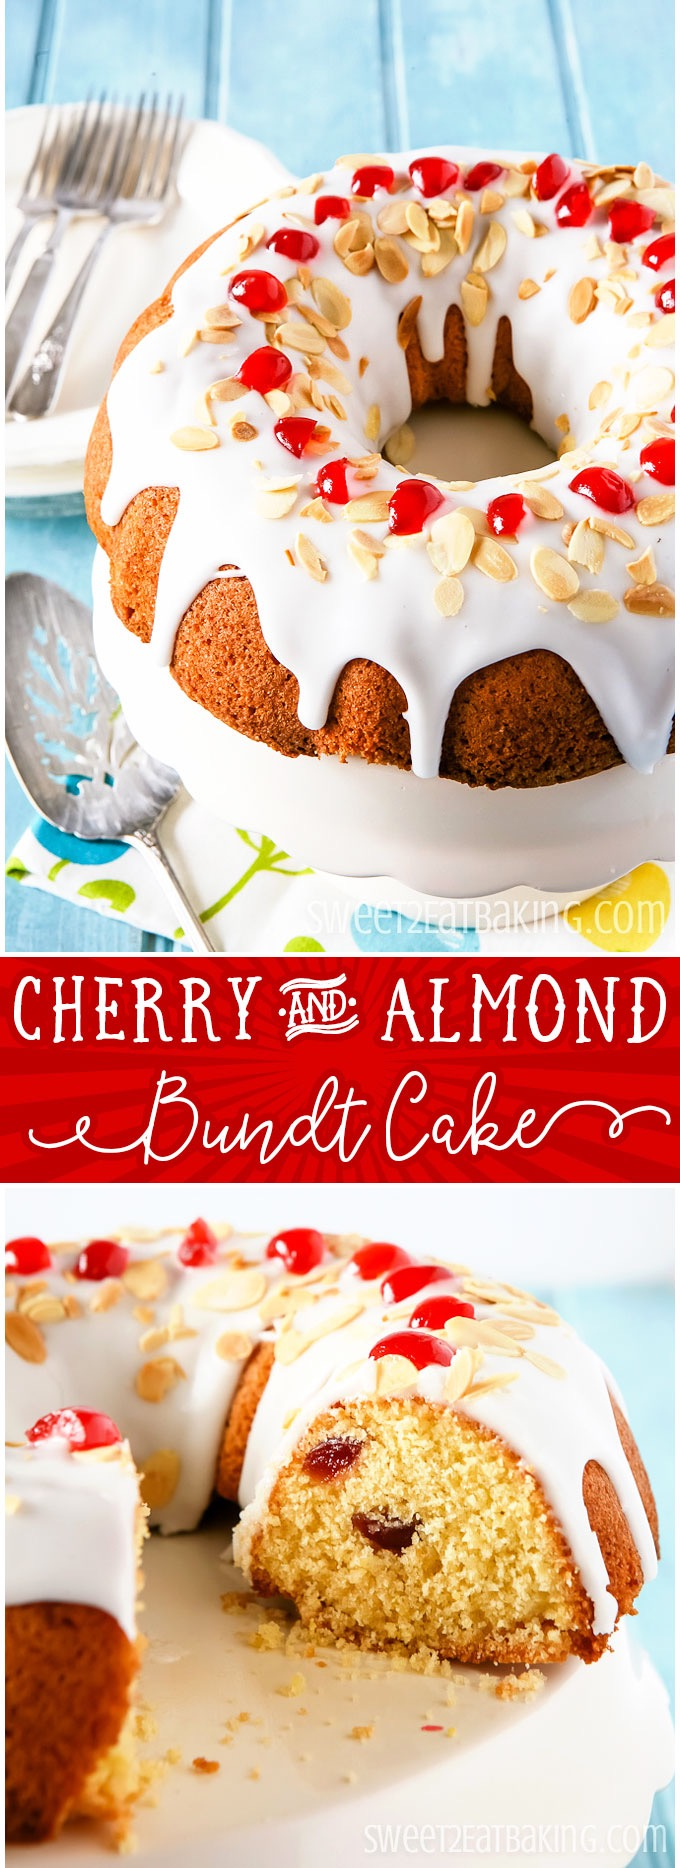 Cherry and Almond Bundt Cake Recipe by Sweet2EatBaking.com | This delicious Cherry and Almond Bundt Cake recipe is a light and moist cake, studded with french glacé cherries, ground almonds, and lemon zest throughout the batter. Topped off with a fresh lemon glacé icing and sprinkled with toasted almonds and glacé cherries.